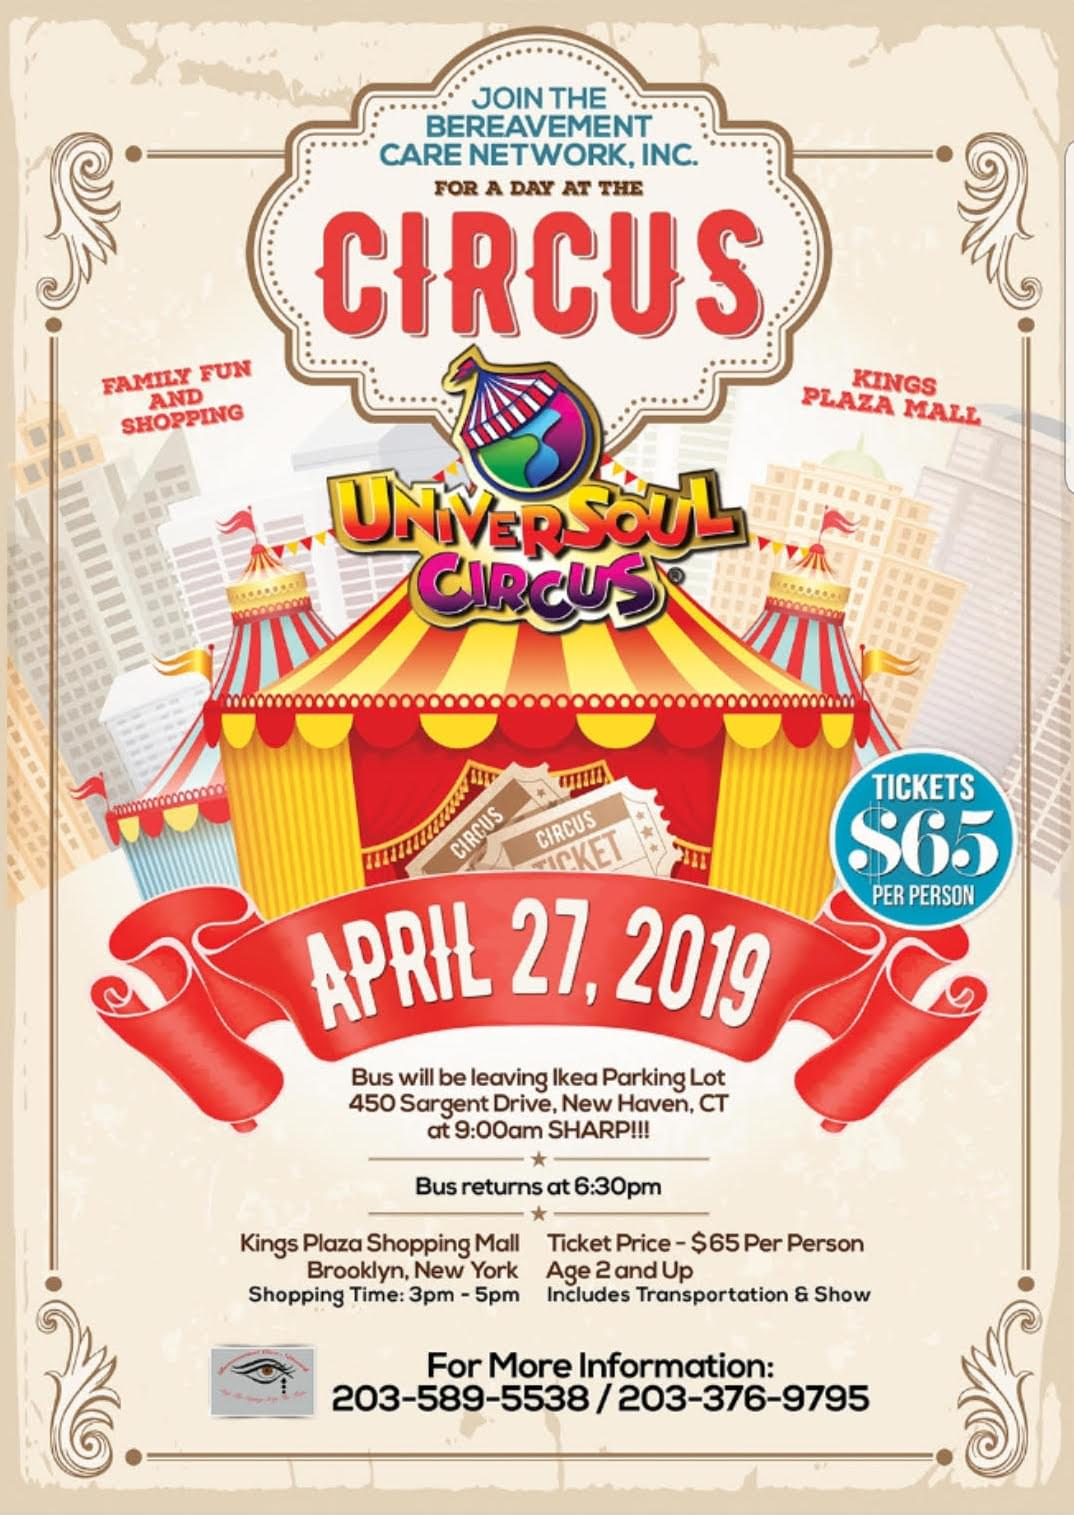 Bereavement Care Network, Inc. Presents UniversalSoul Circus Bus Trip